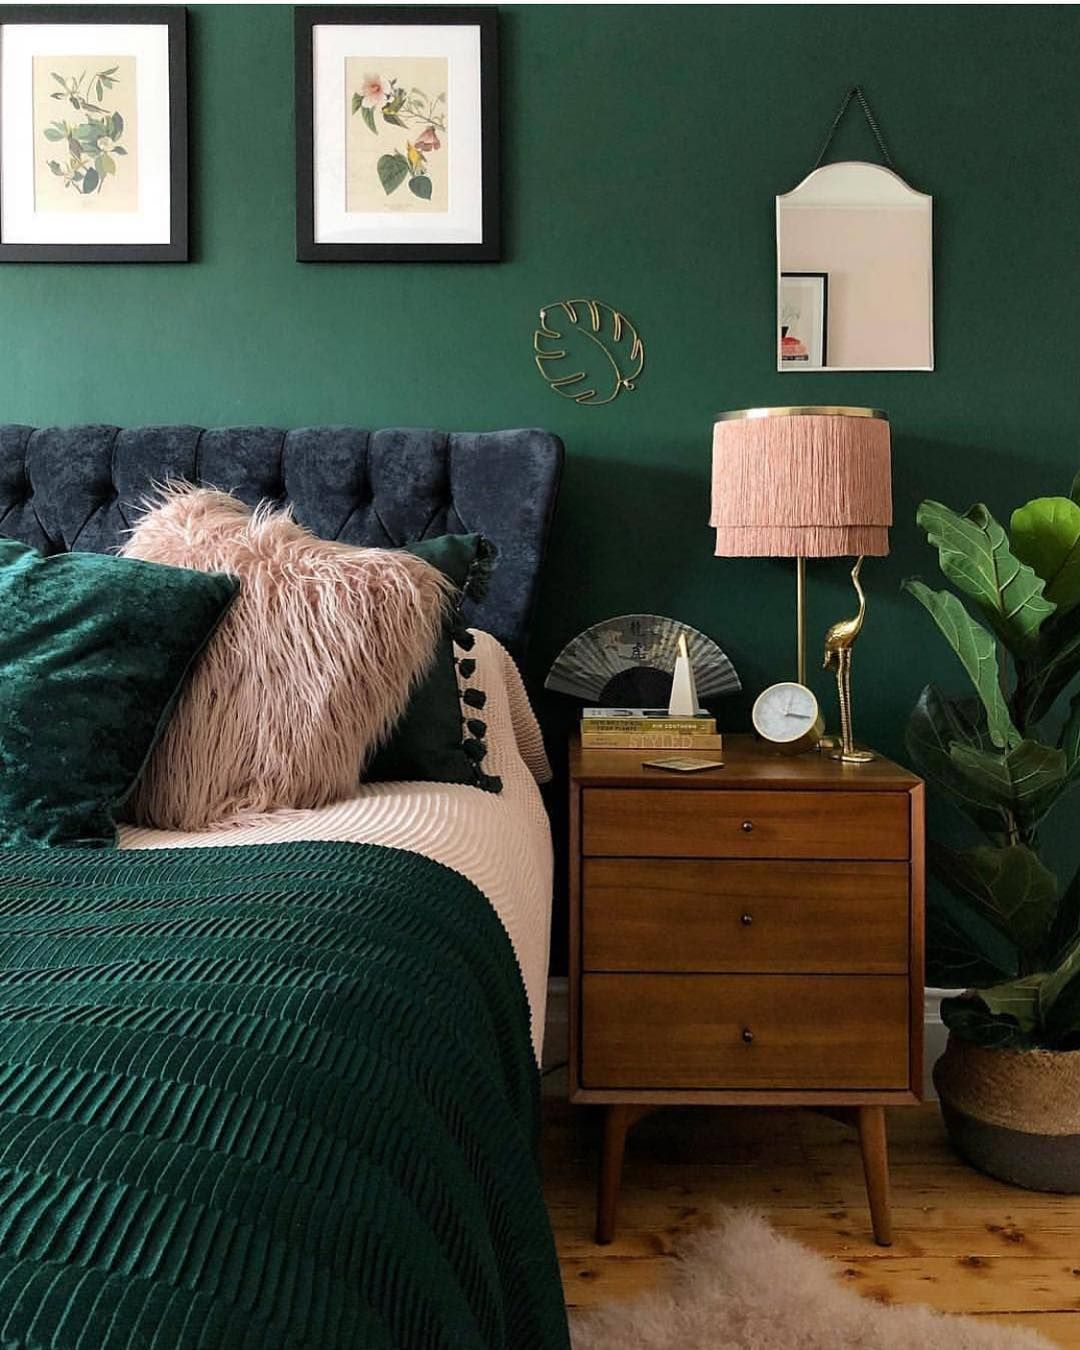 """Taking the nature to the """"BEDROOM"""". Pinks & Greens 💕 Styling Tip: A pot of plant in the bedroom brining the nature in side. Trendy Indoor plants could be Cactus, Spider, Kentia Plant and Aloe 🎍🌱🌷 #interiordesign #homedecor #bedroomideas #interiorstyling #houseplants #luxuryinteriors #interiorideas #decor"""